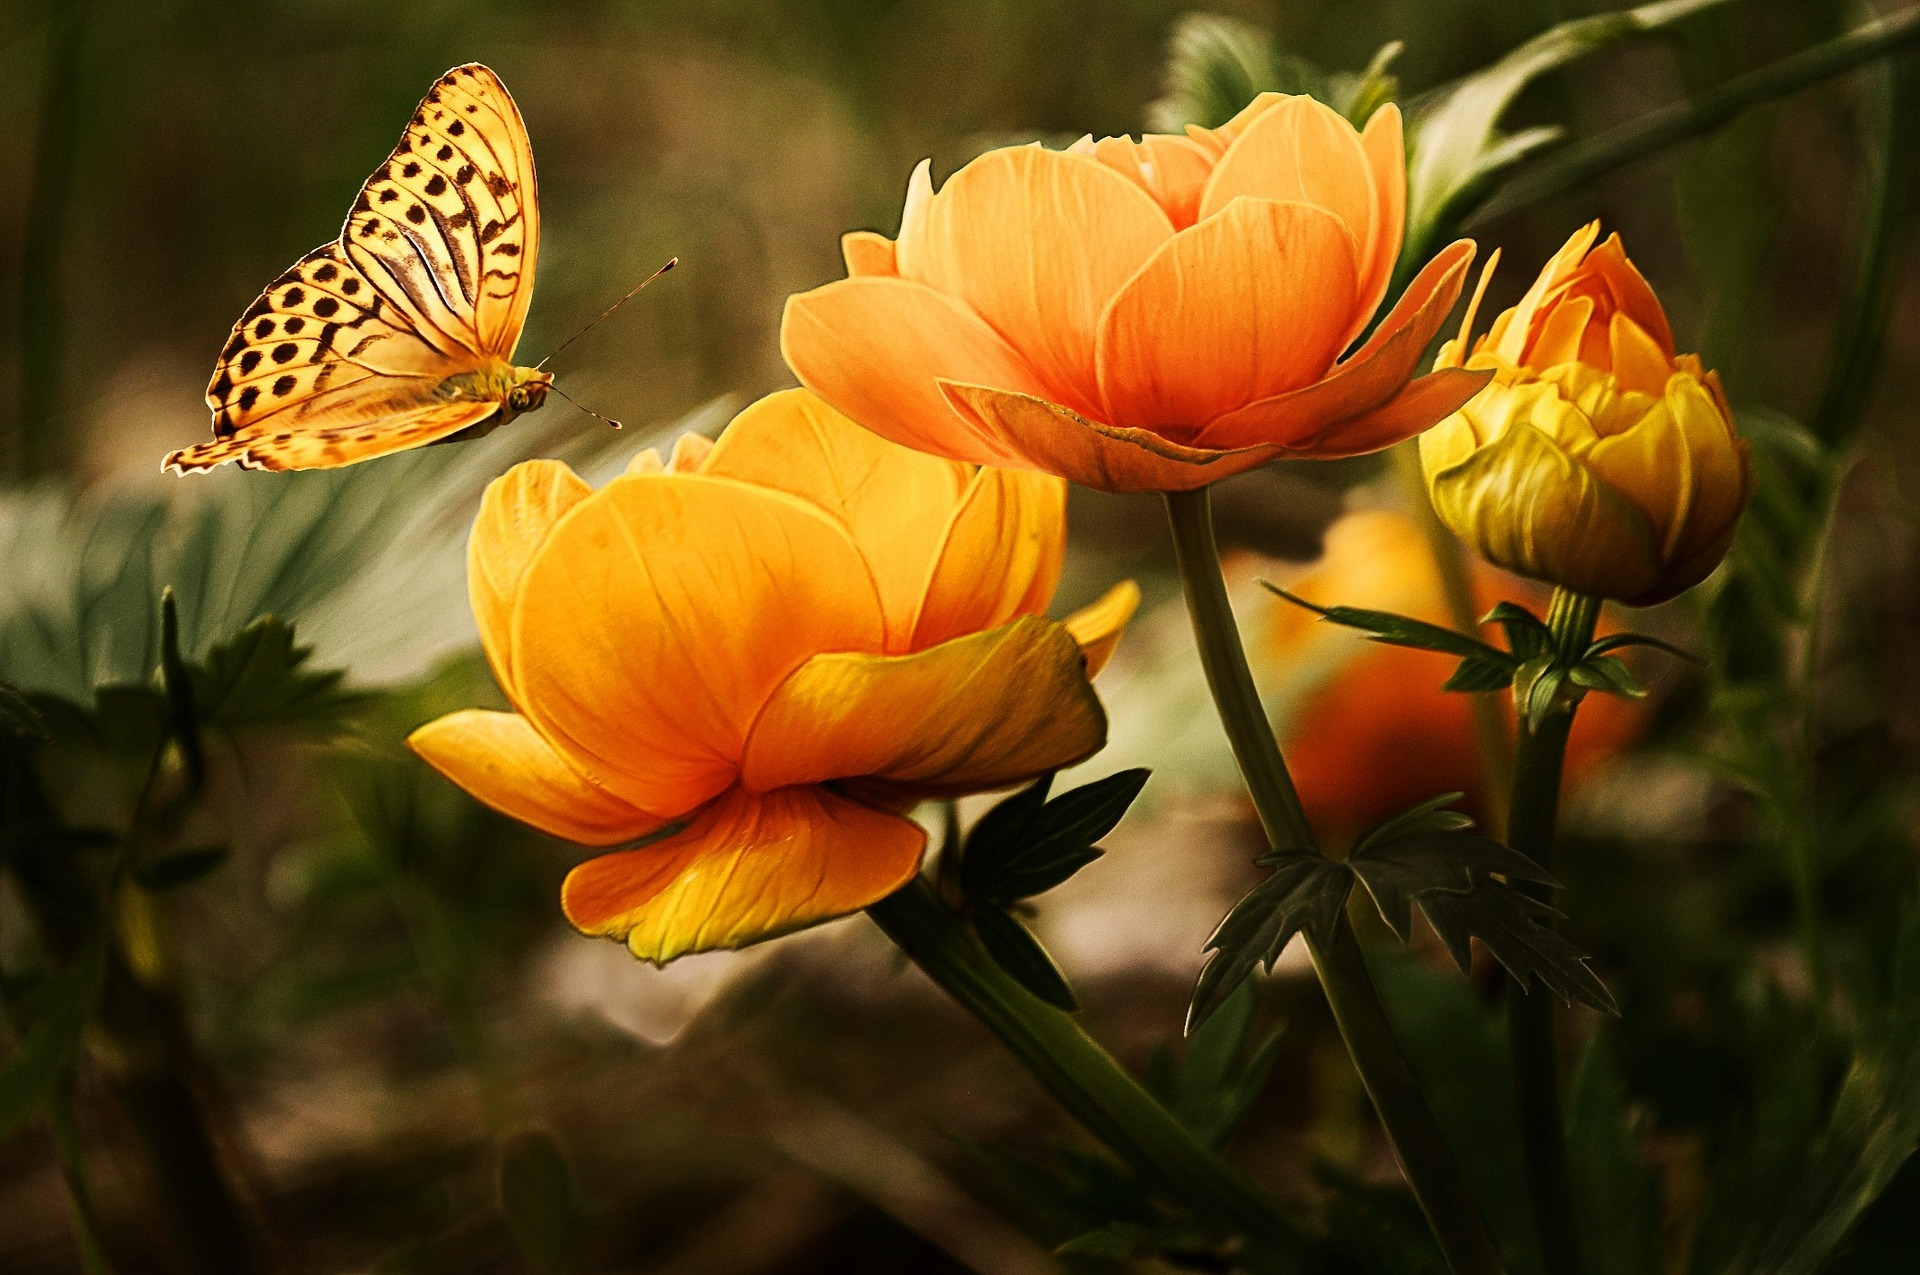 the unique joy a special needs child gives is like the thing of beauty a butterfly becomes